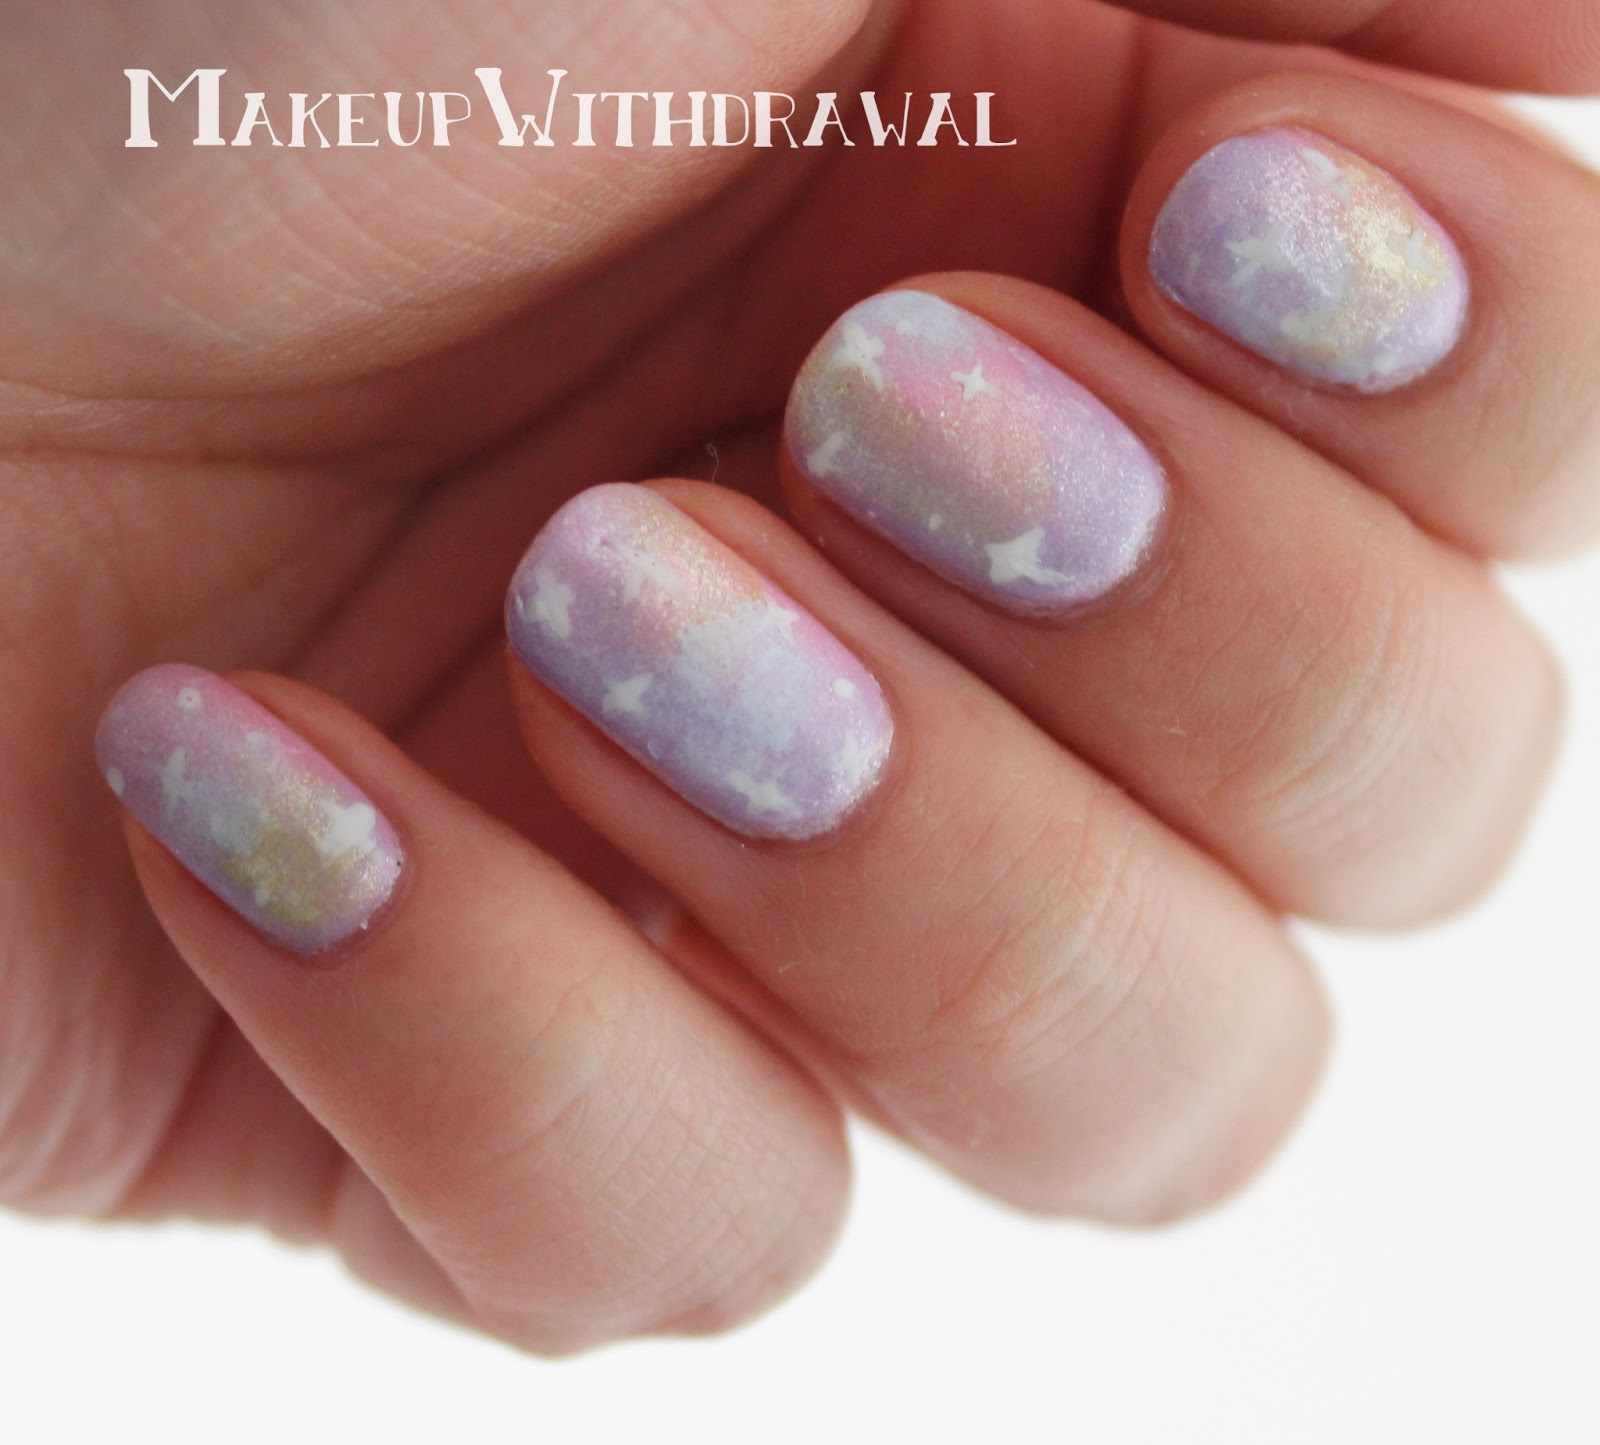 Pastel Galaxy Nails with Zoya Lovely Shades | Makeup Withdrawal